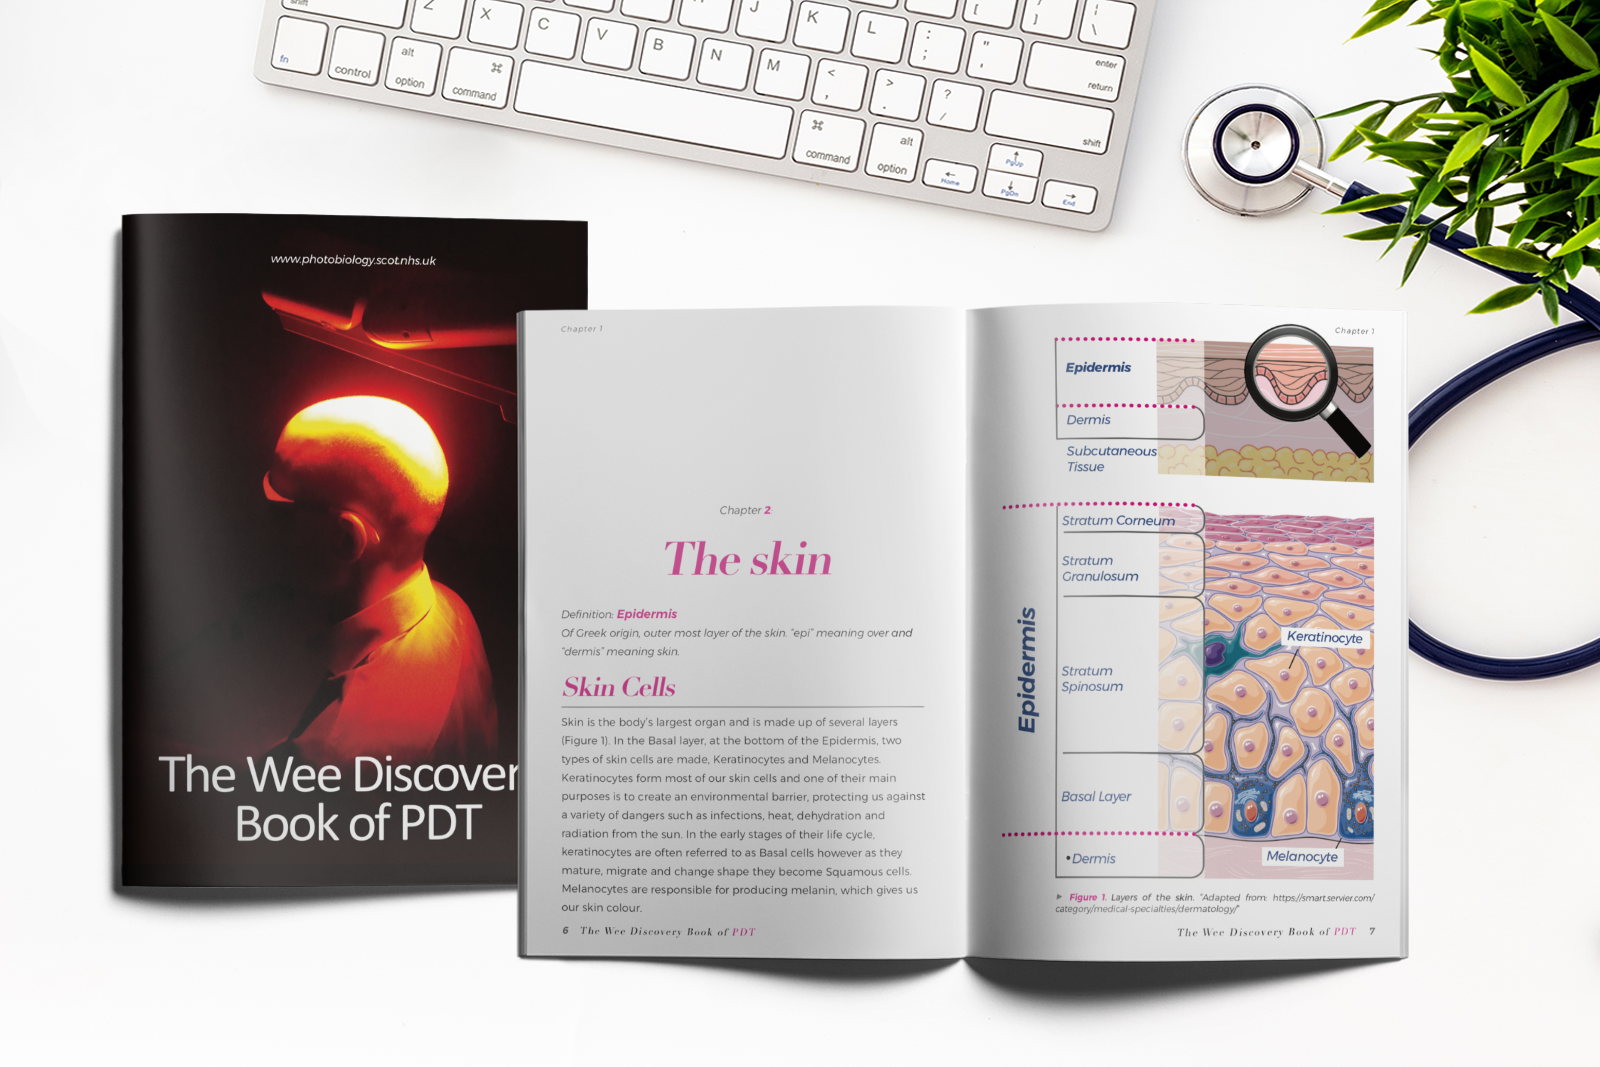 The-wee-discovery-book-of-PDT-blog